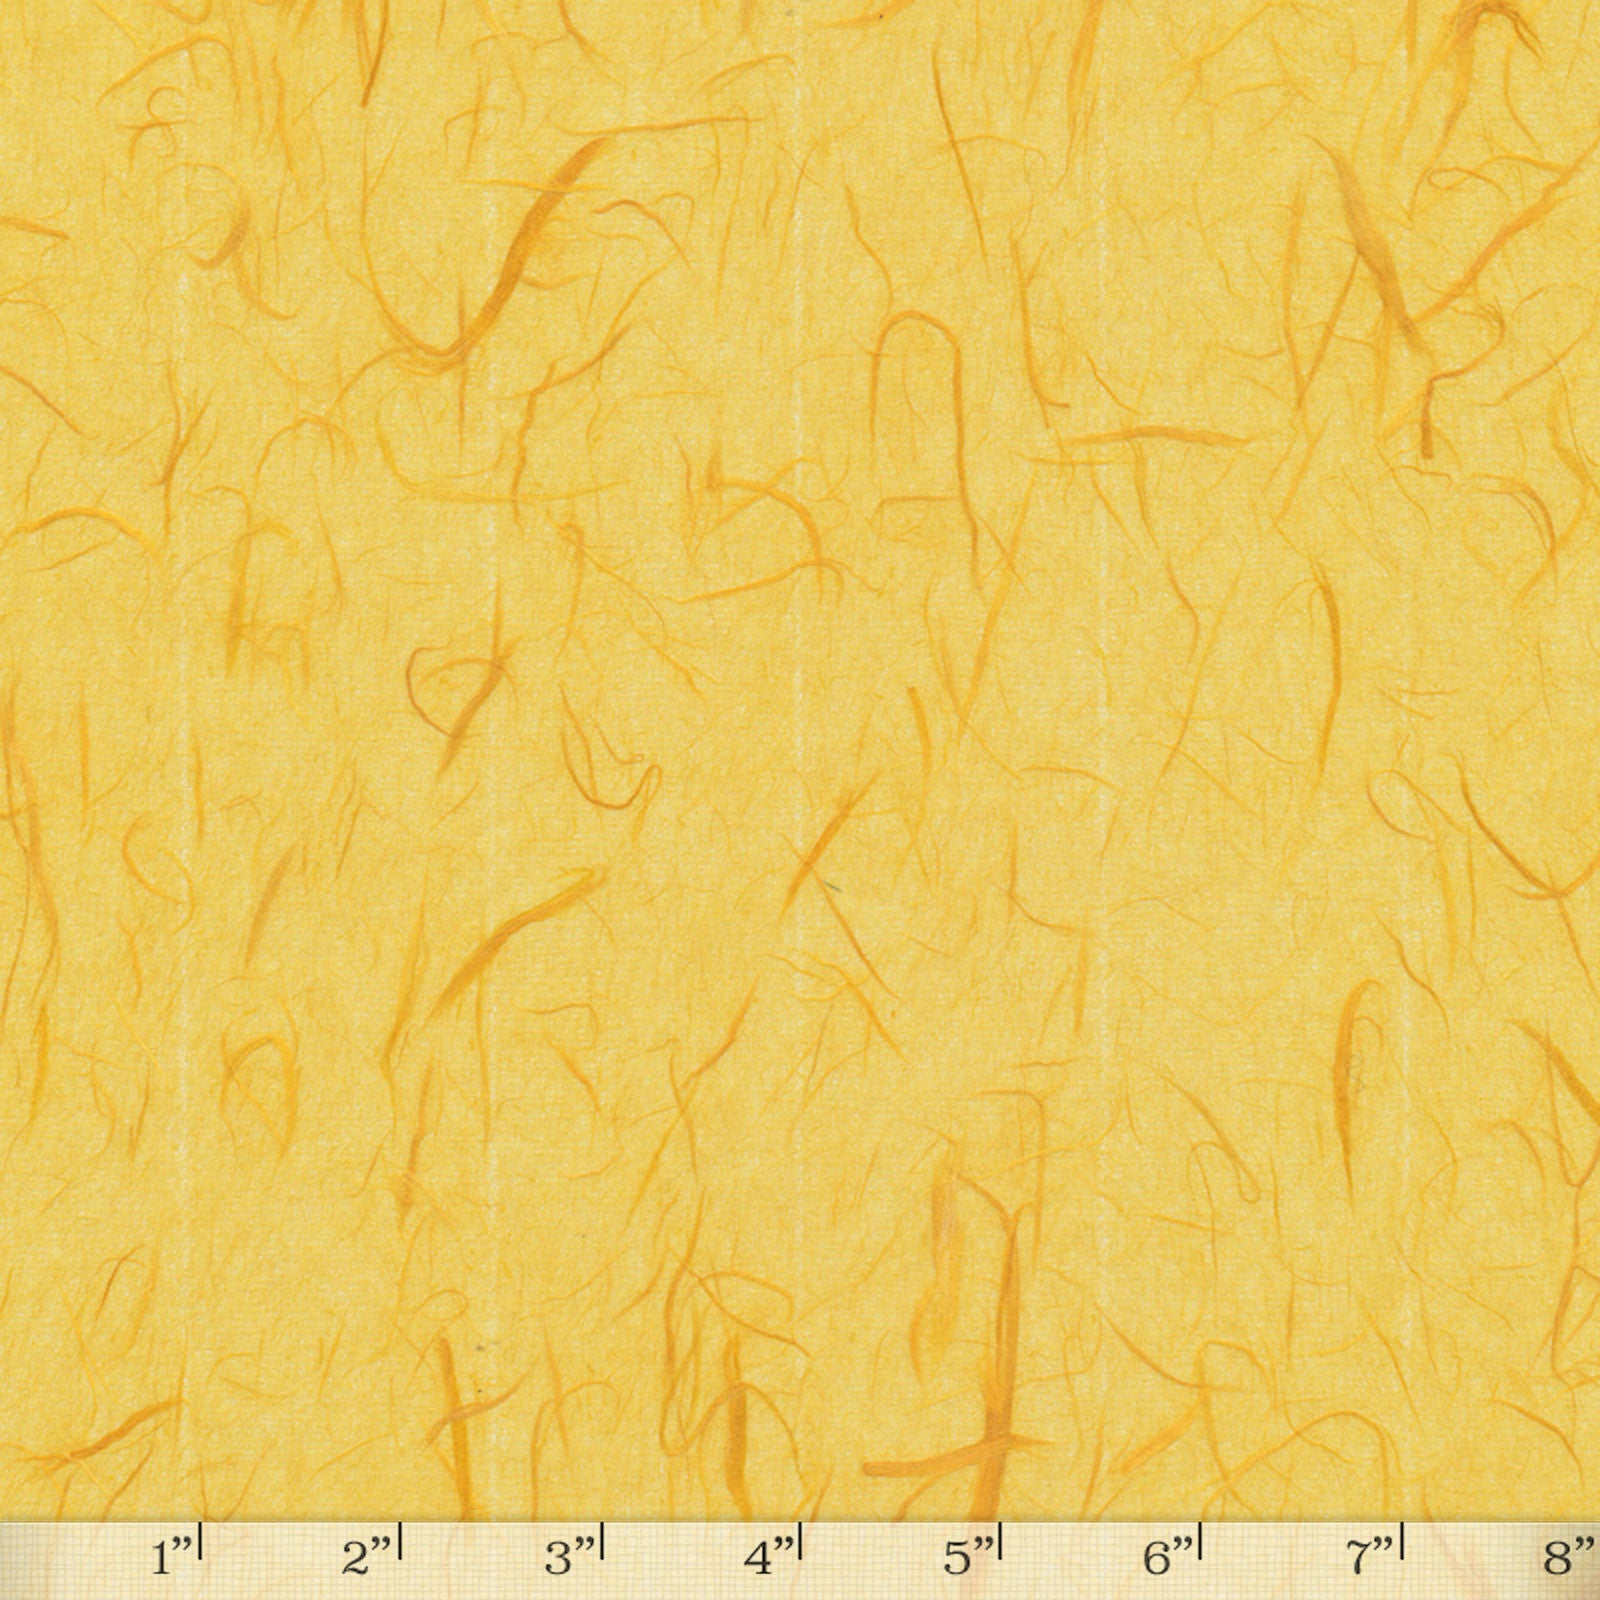 Unryu Tissue Dark Yellow - Full Sheet